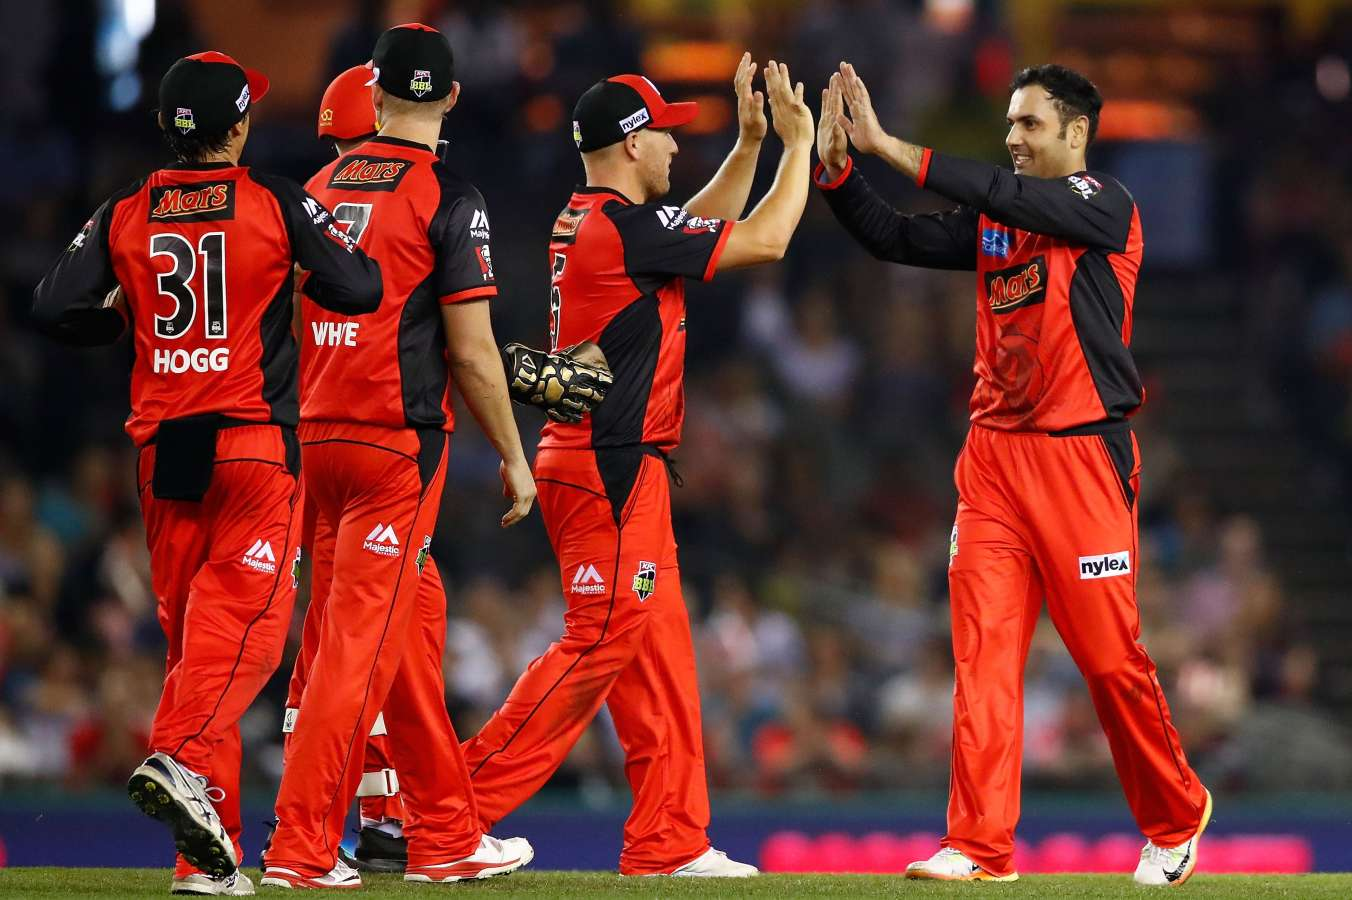 BBL Preview: Melbourne Renegades vs Melbourne Stars